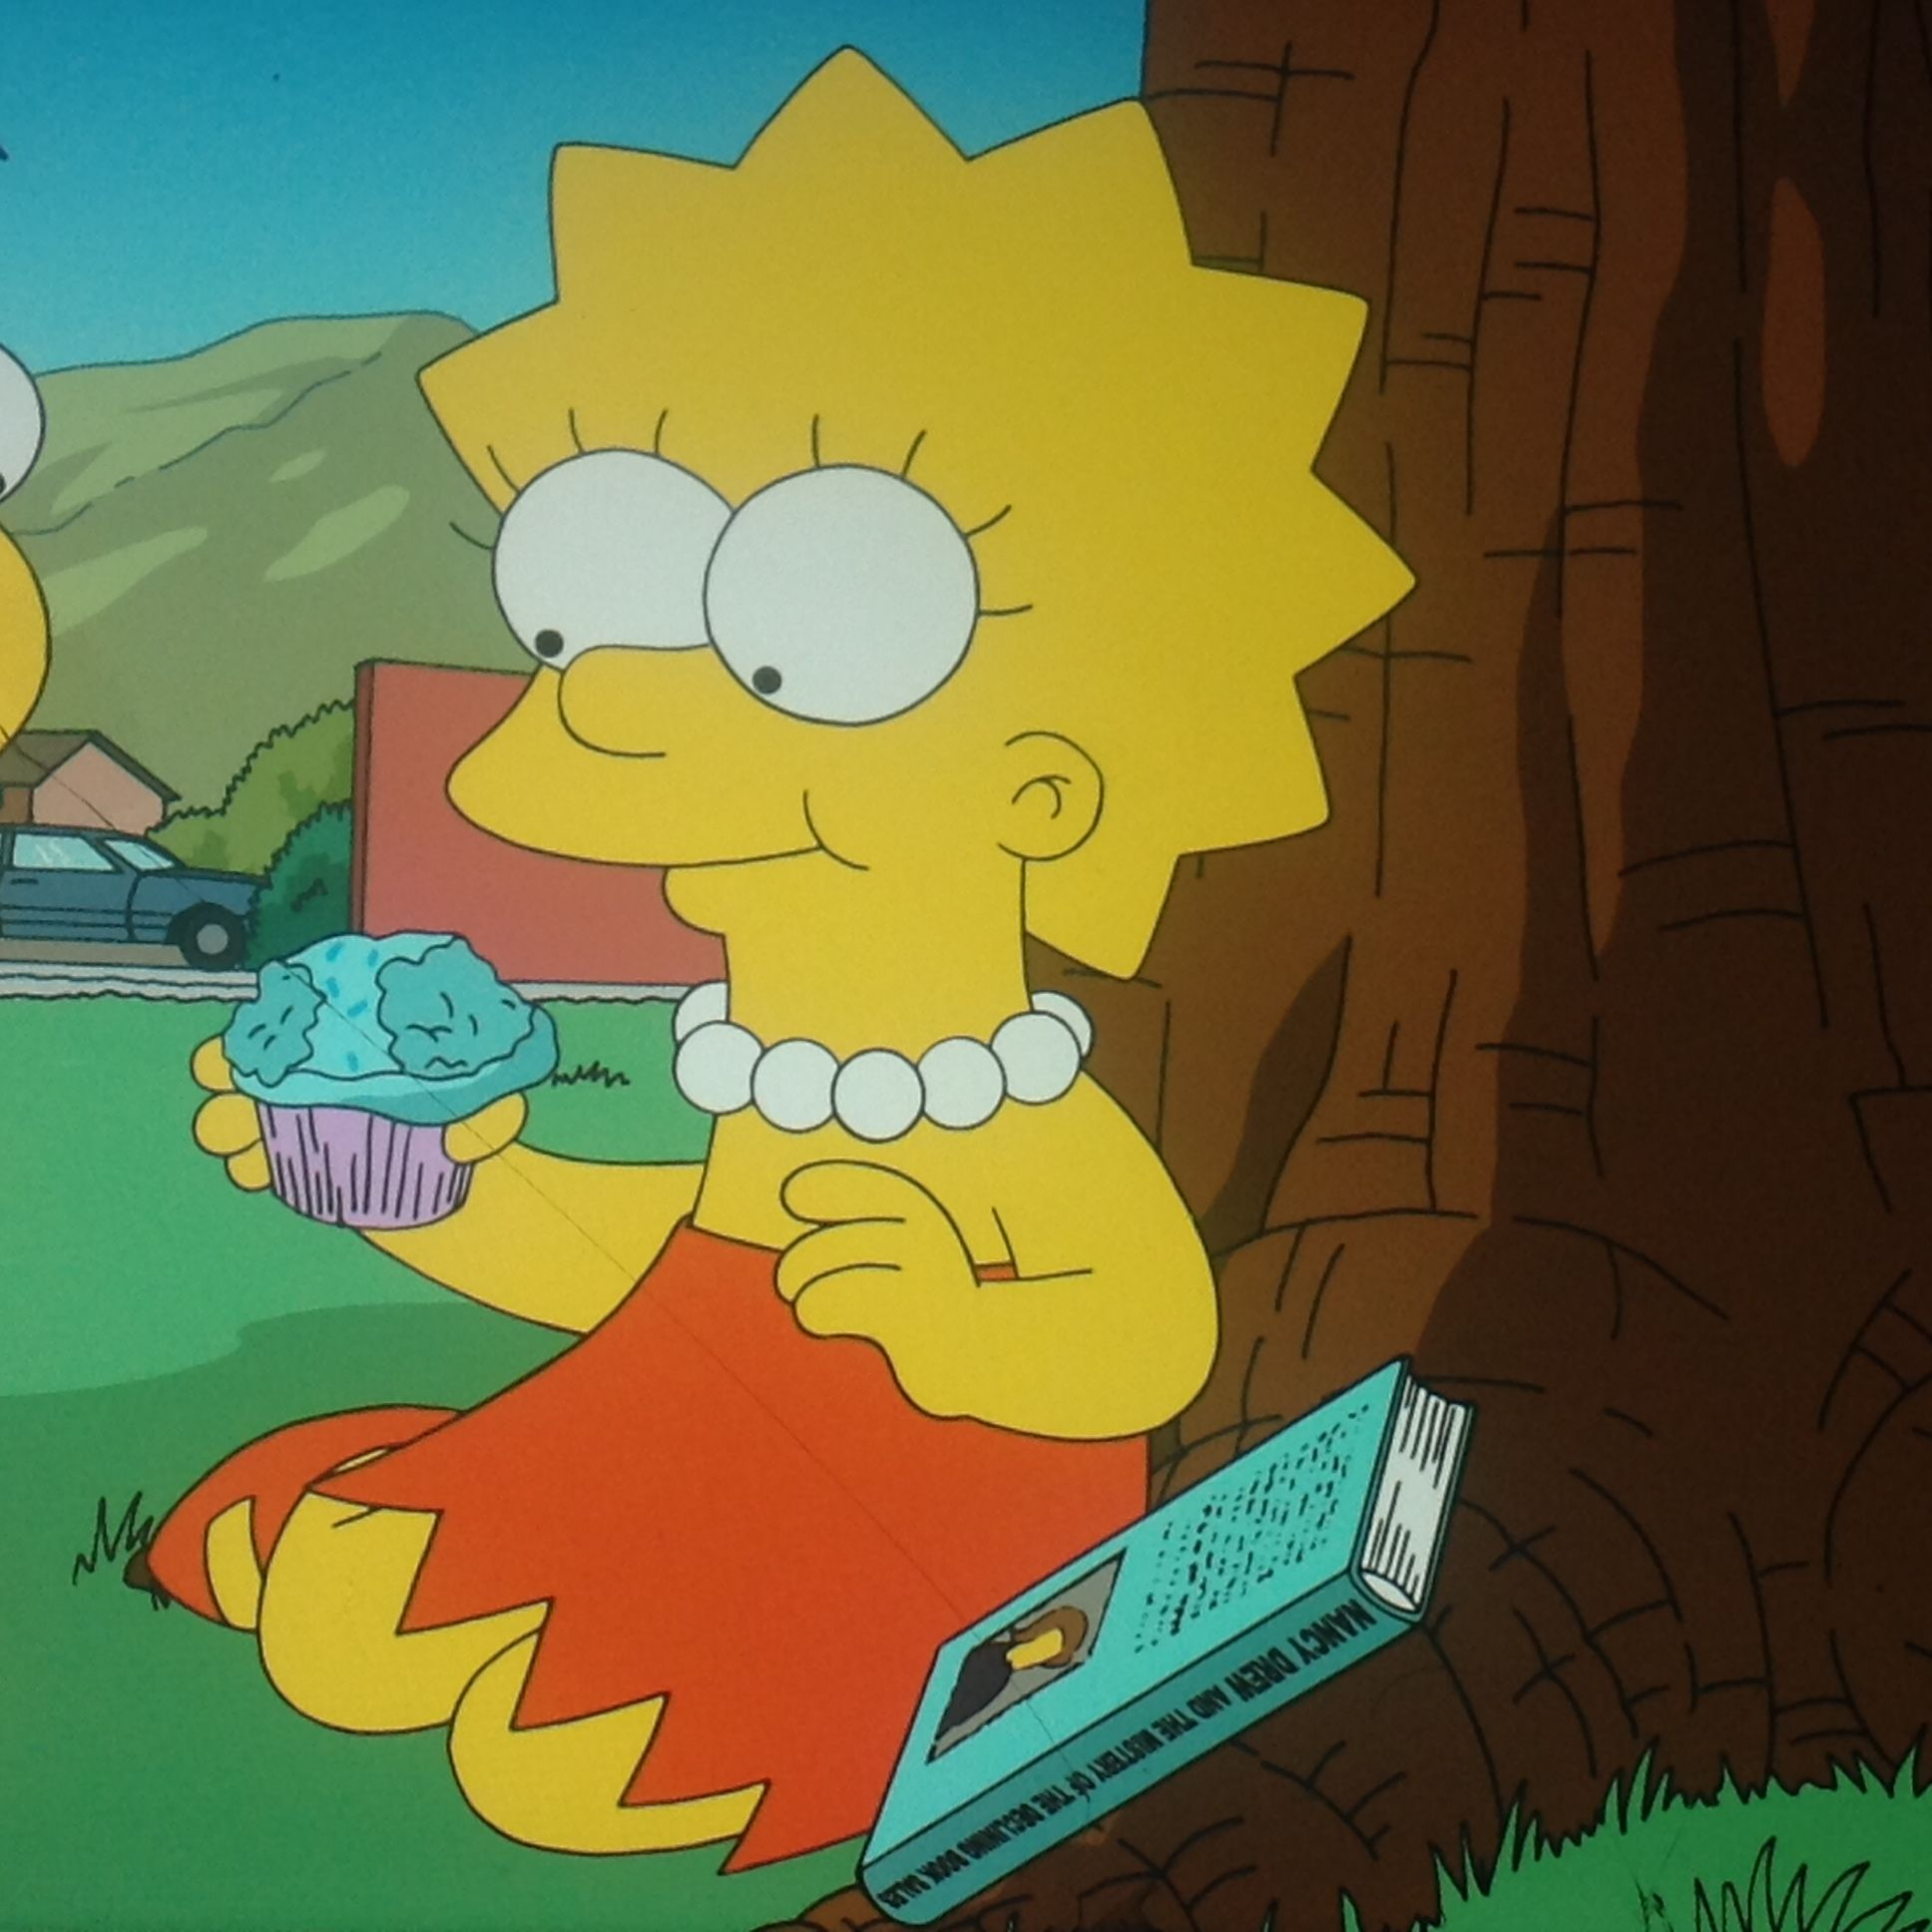 Pin by Devon White on Lisa Simpson❤️ in 2020 | Lisa simpson, Simpson, Tri